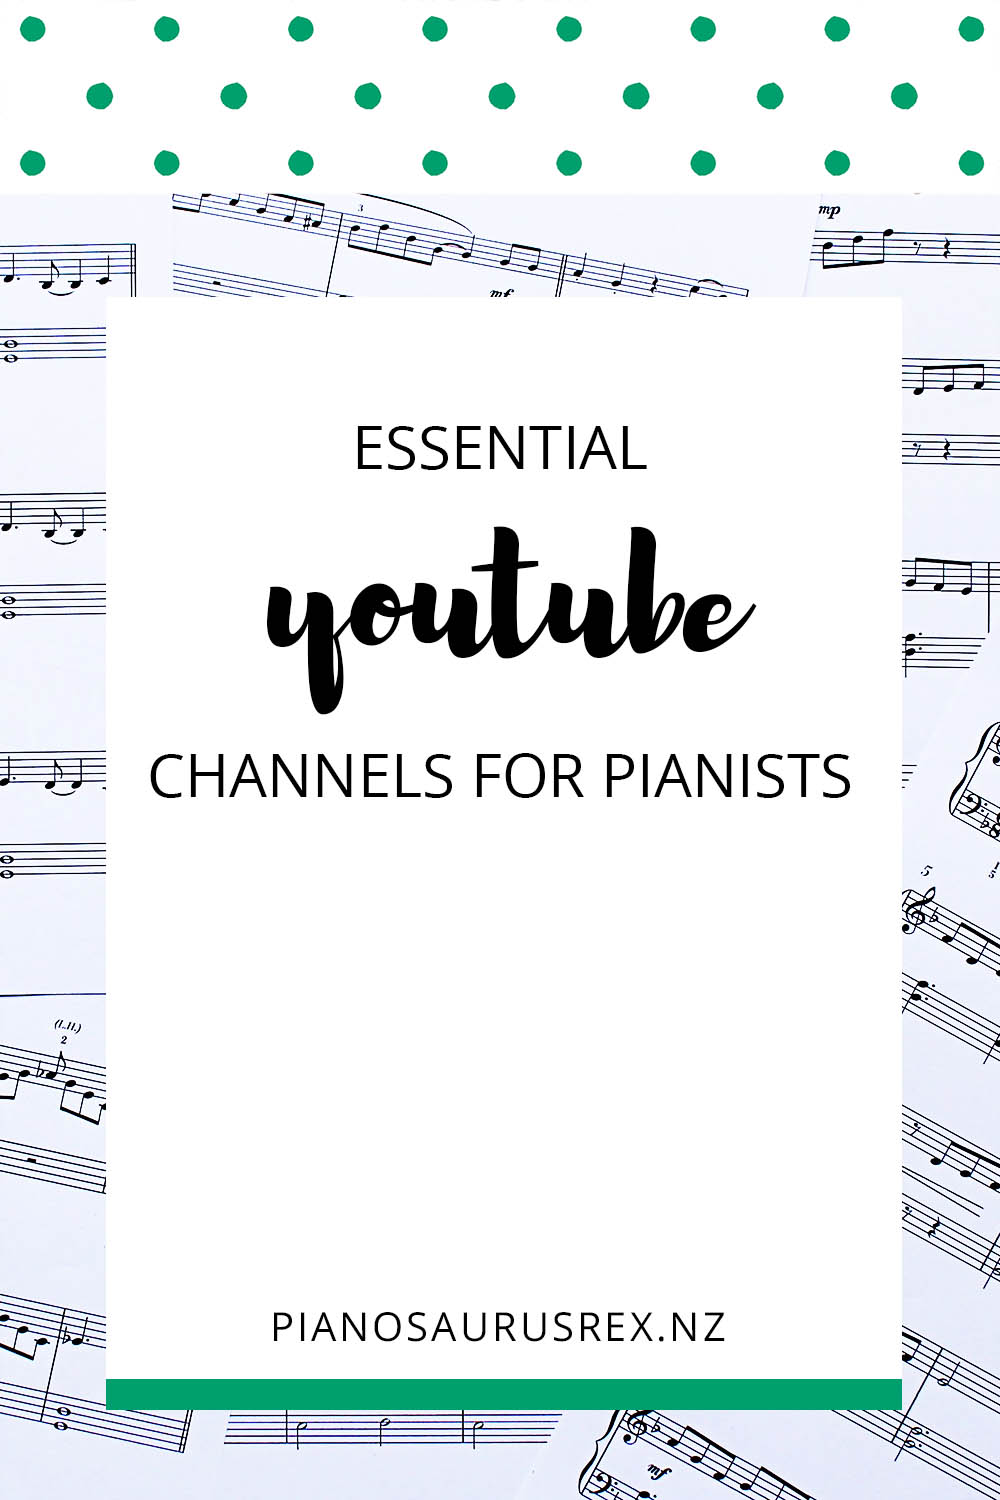 Essential YouTube Channels For Pianists